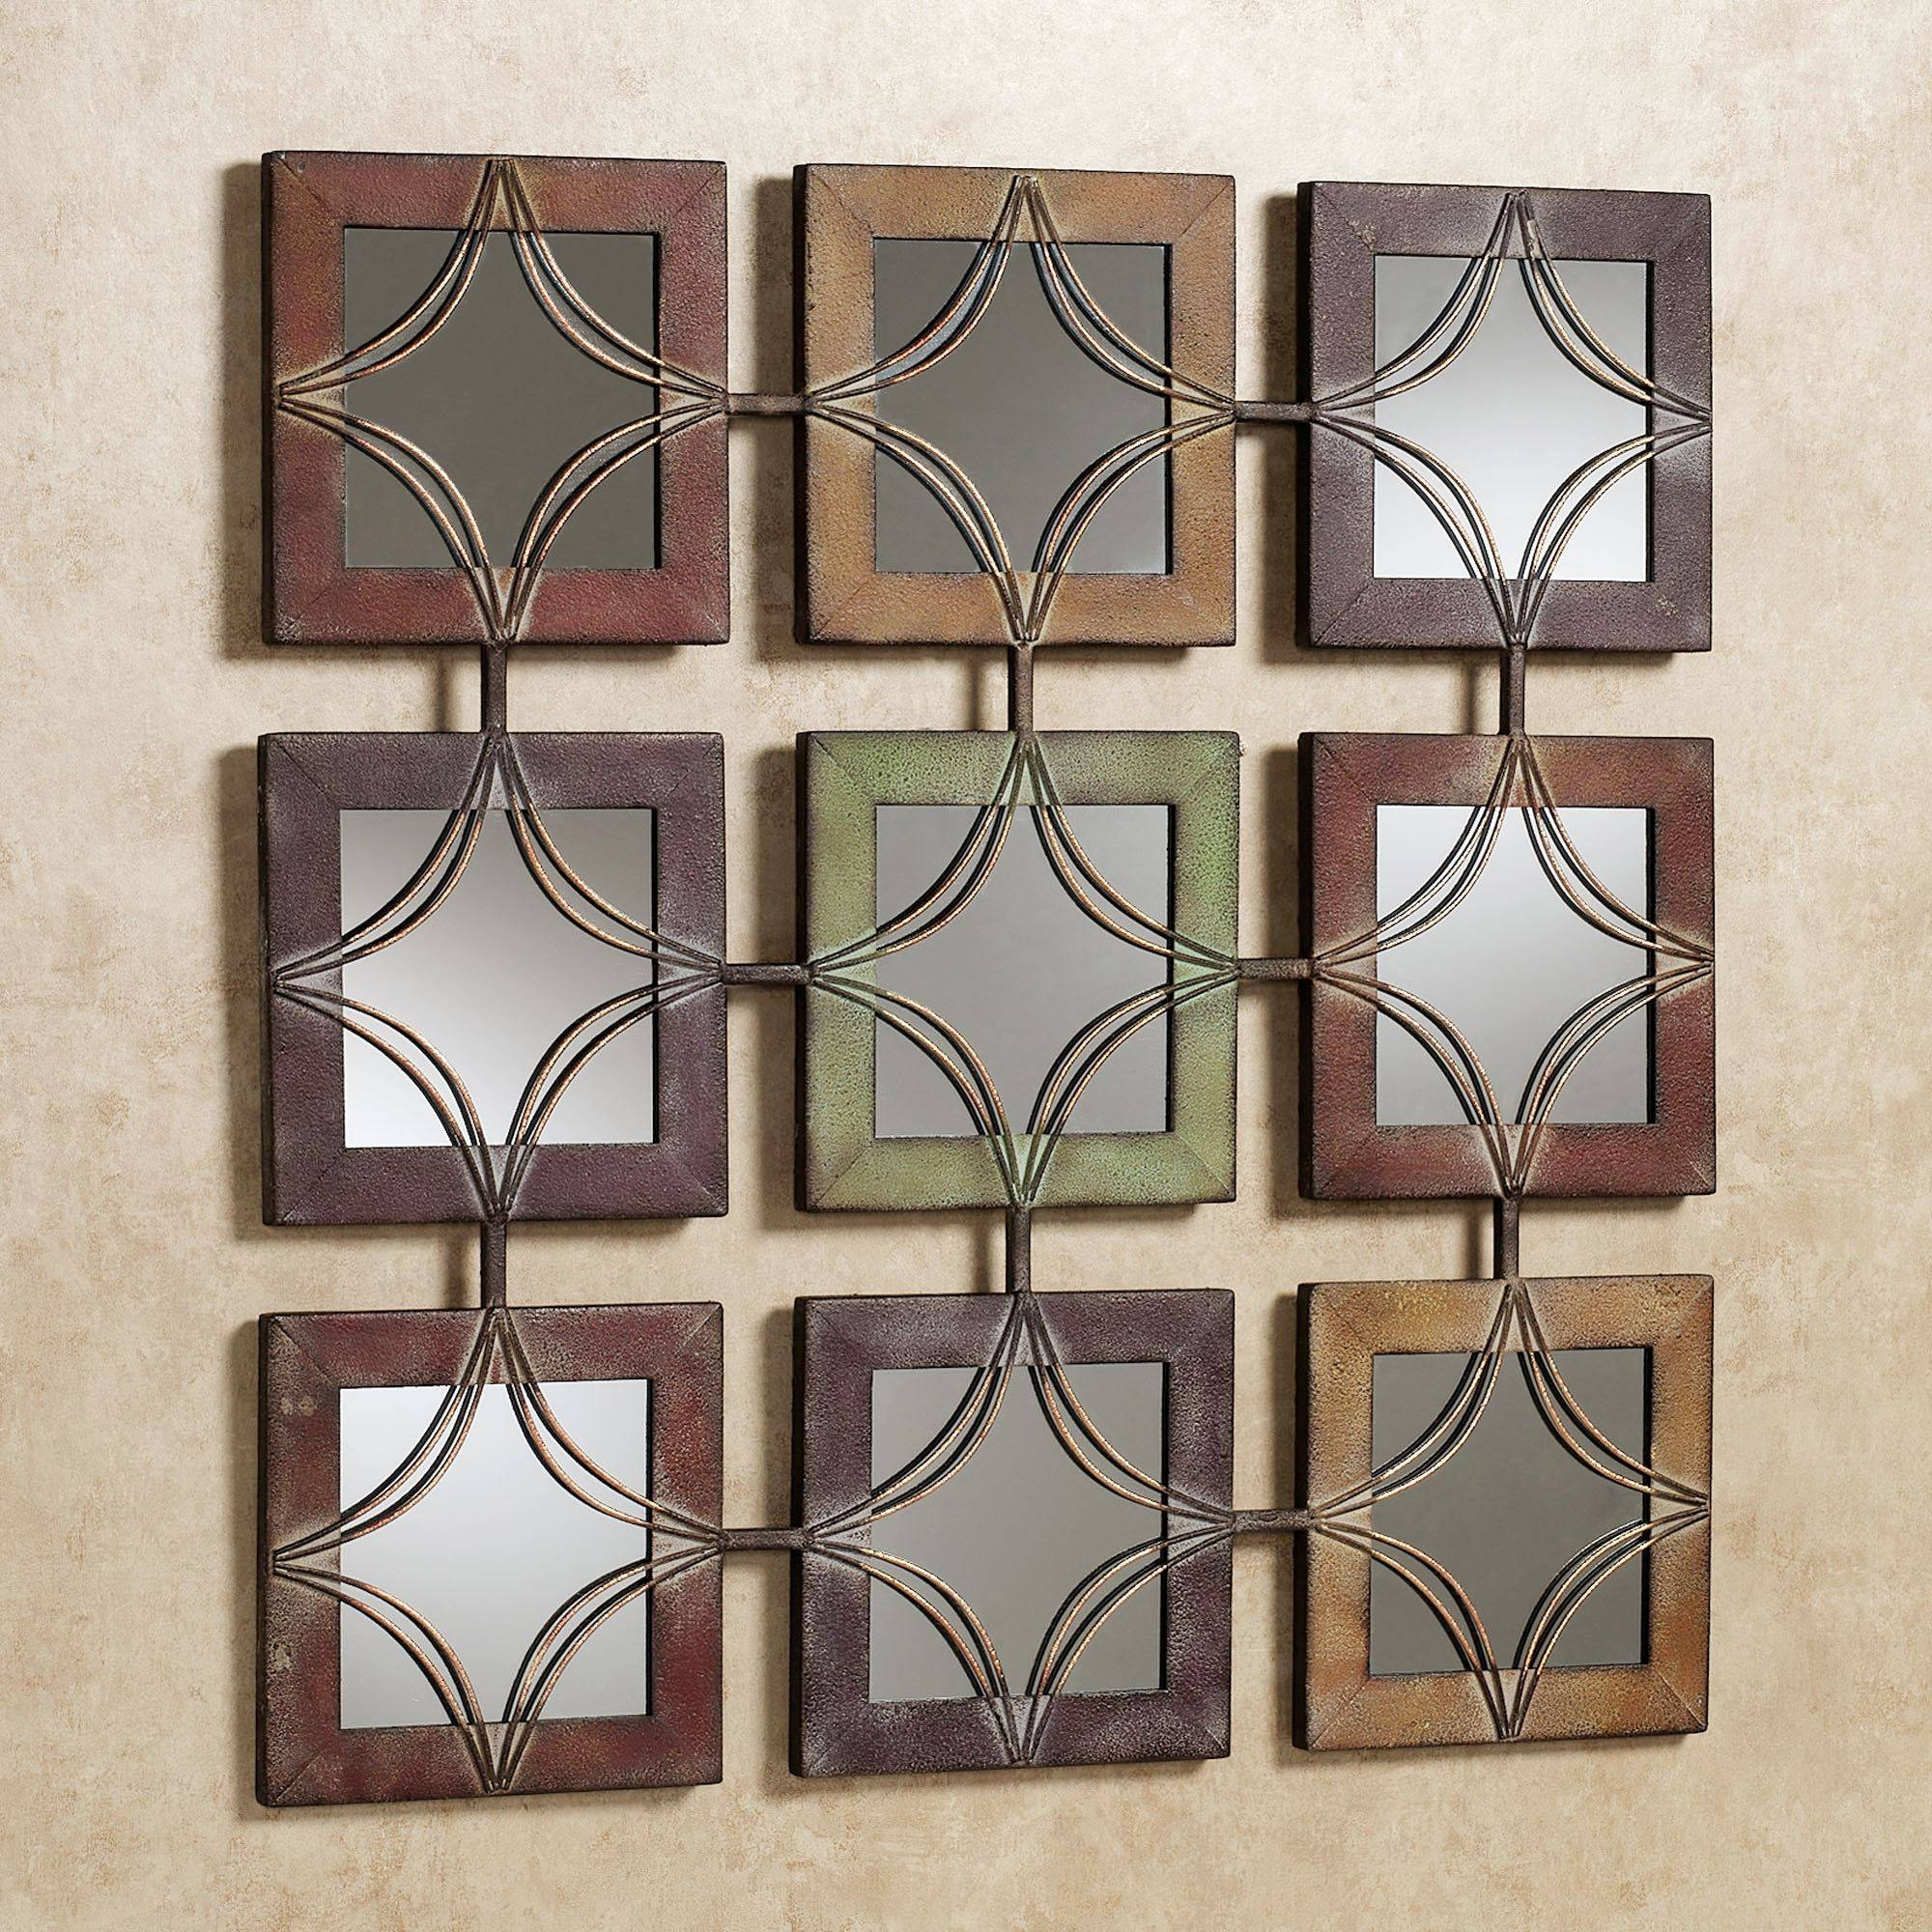 Domini Mirrored Metal Wall Art Within Most Recently Released Metal Wall Art (View 7 of 30)